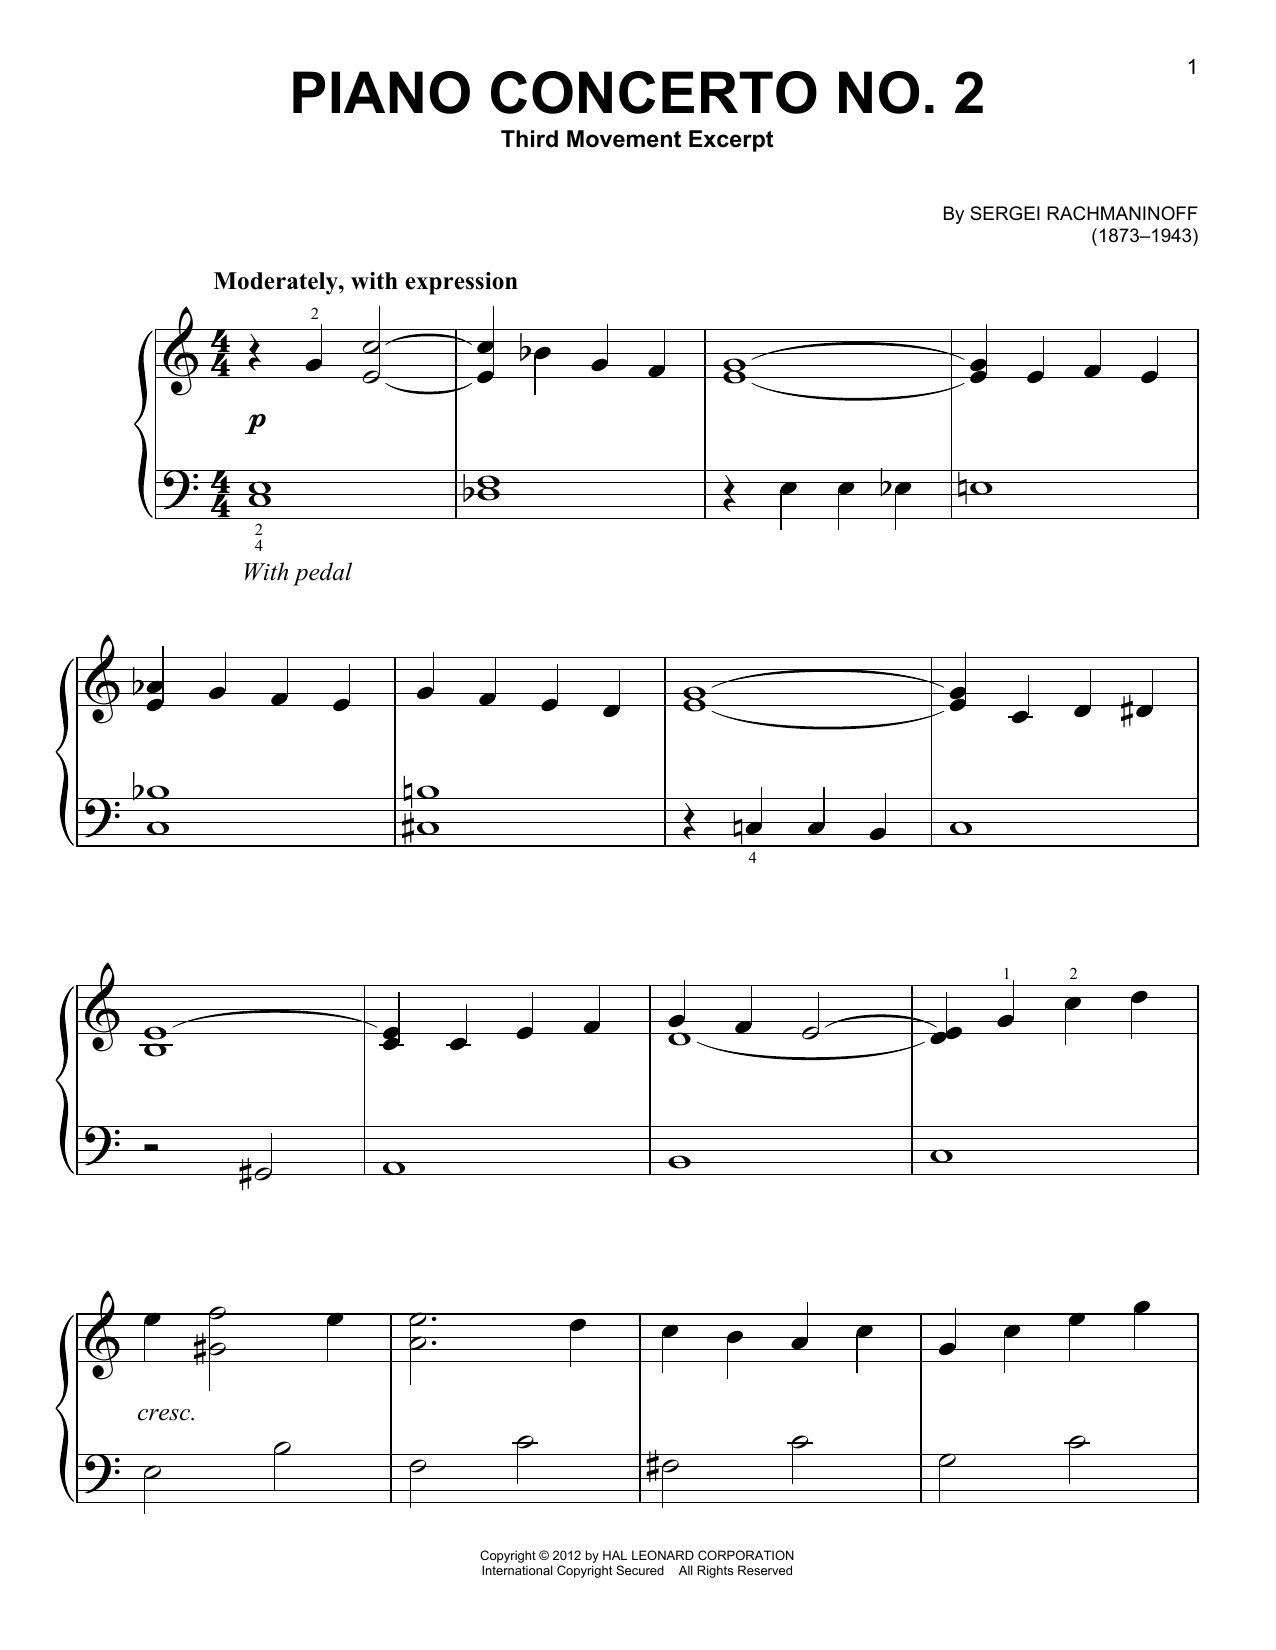 Sergei Rachmaninoff Piano Concerto No. 2, Third Movement Excerpt sheet music notes and chords